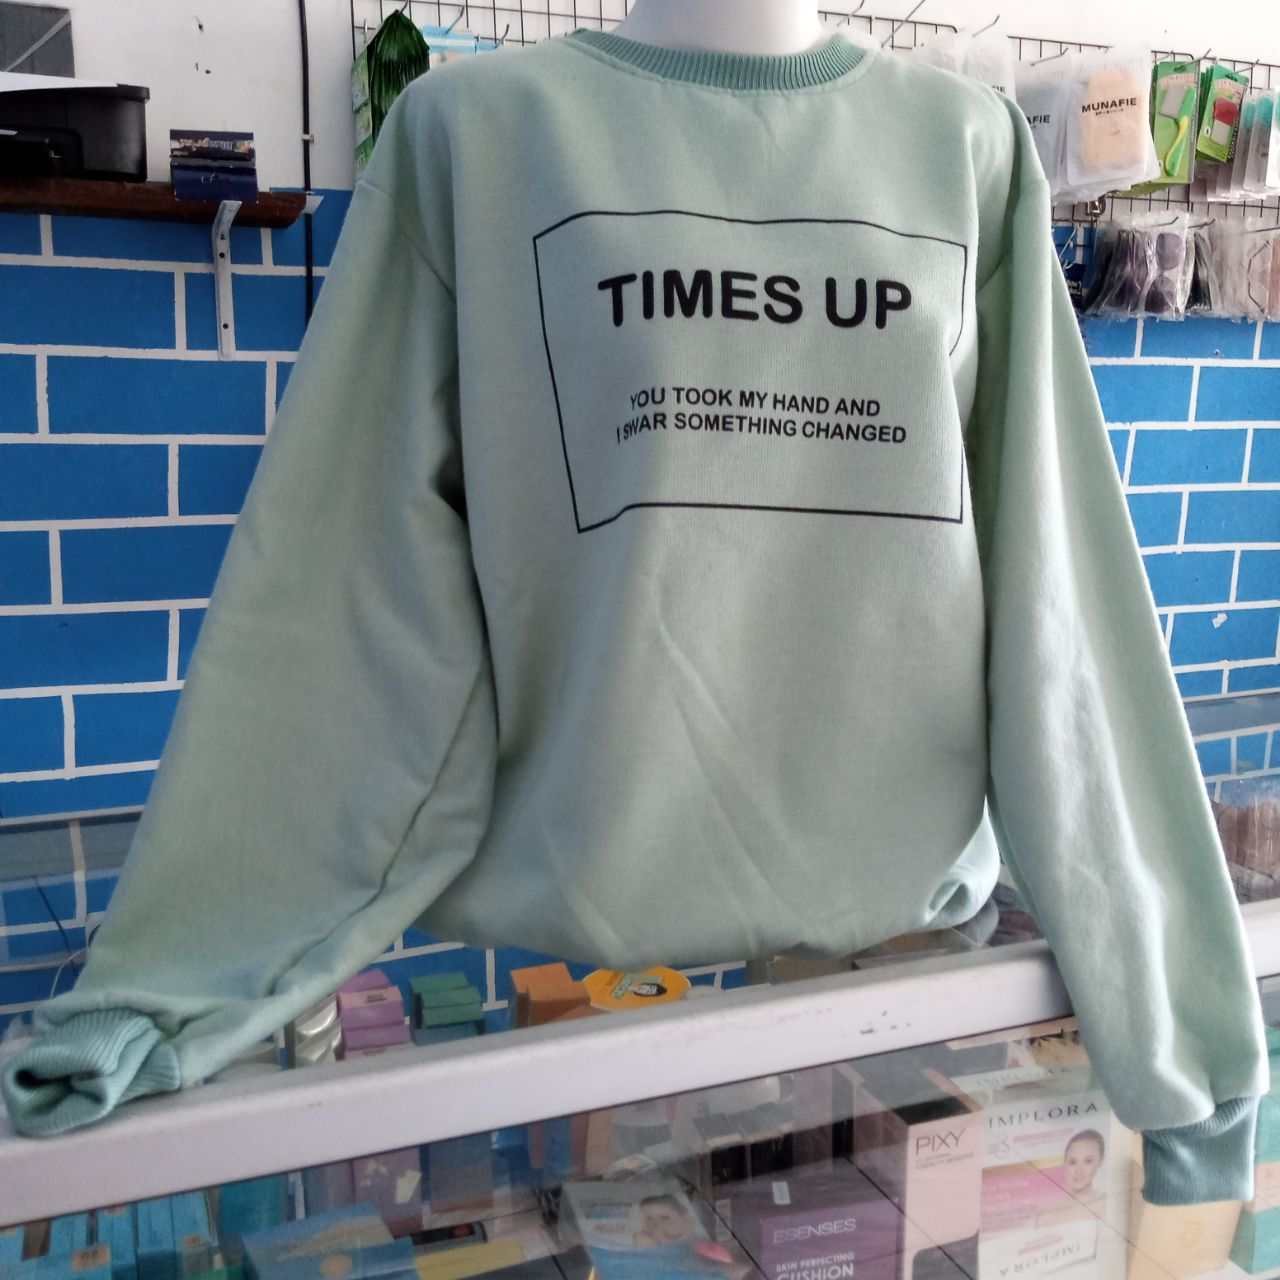 ini adalah Sweater Time Mint, size: LD 90cm, Panjang 60cm, material: Fleece, color: Green mint, brand: jaketindonesia, age_group: all ages, gender: unisex